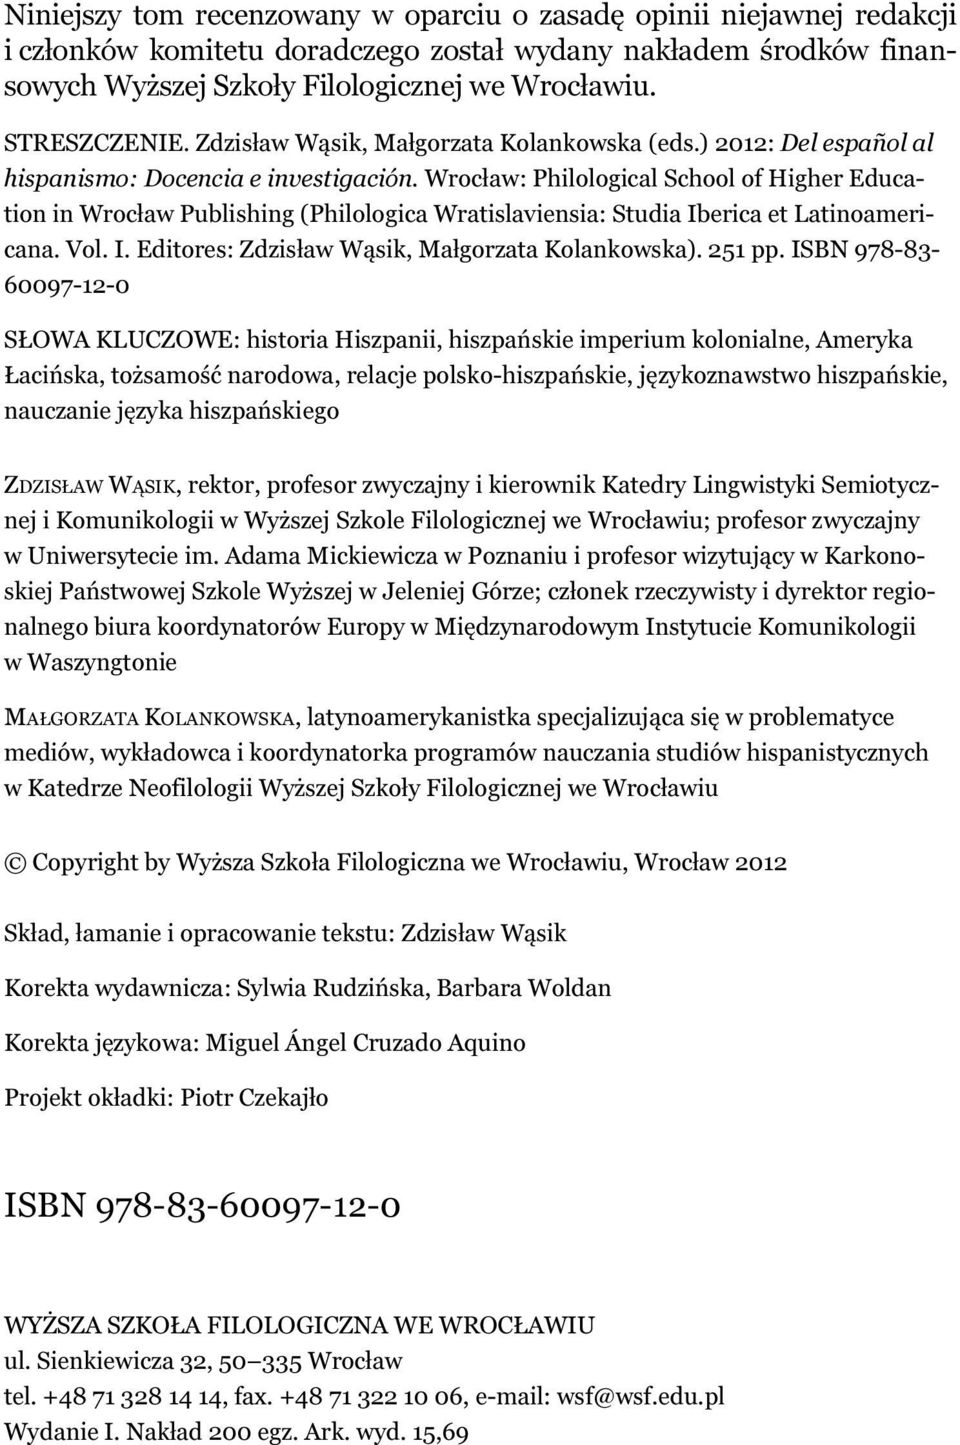 Wrocław: Philological School of Higher Education in Wrocław Publishing (Philologica Wratislaviensia: Studia Iberica et Latinoamericana. Vol. I. Editores: Zdzisław Wąsik, Małgorzata Kolankowska).